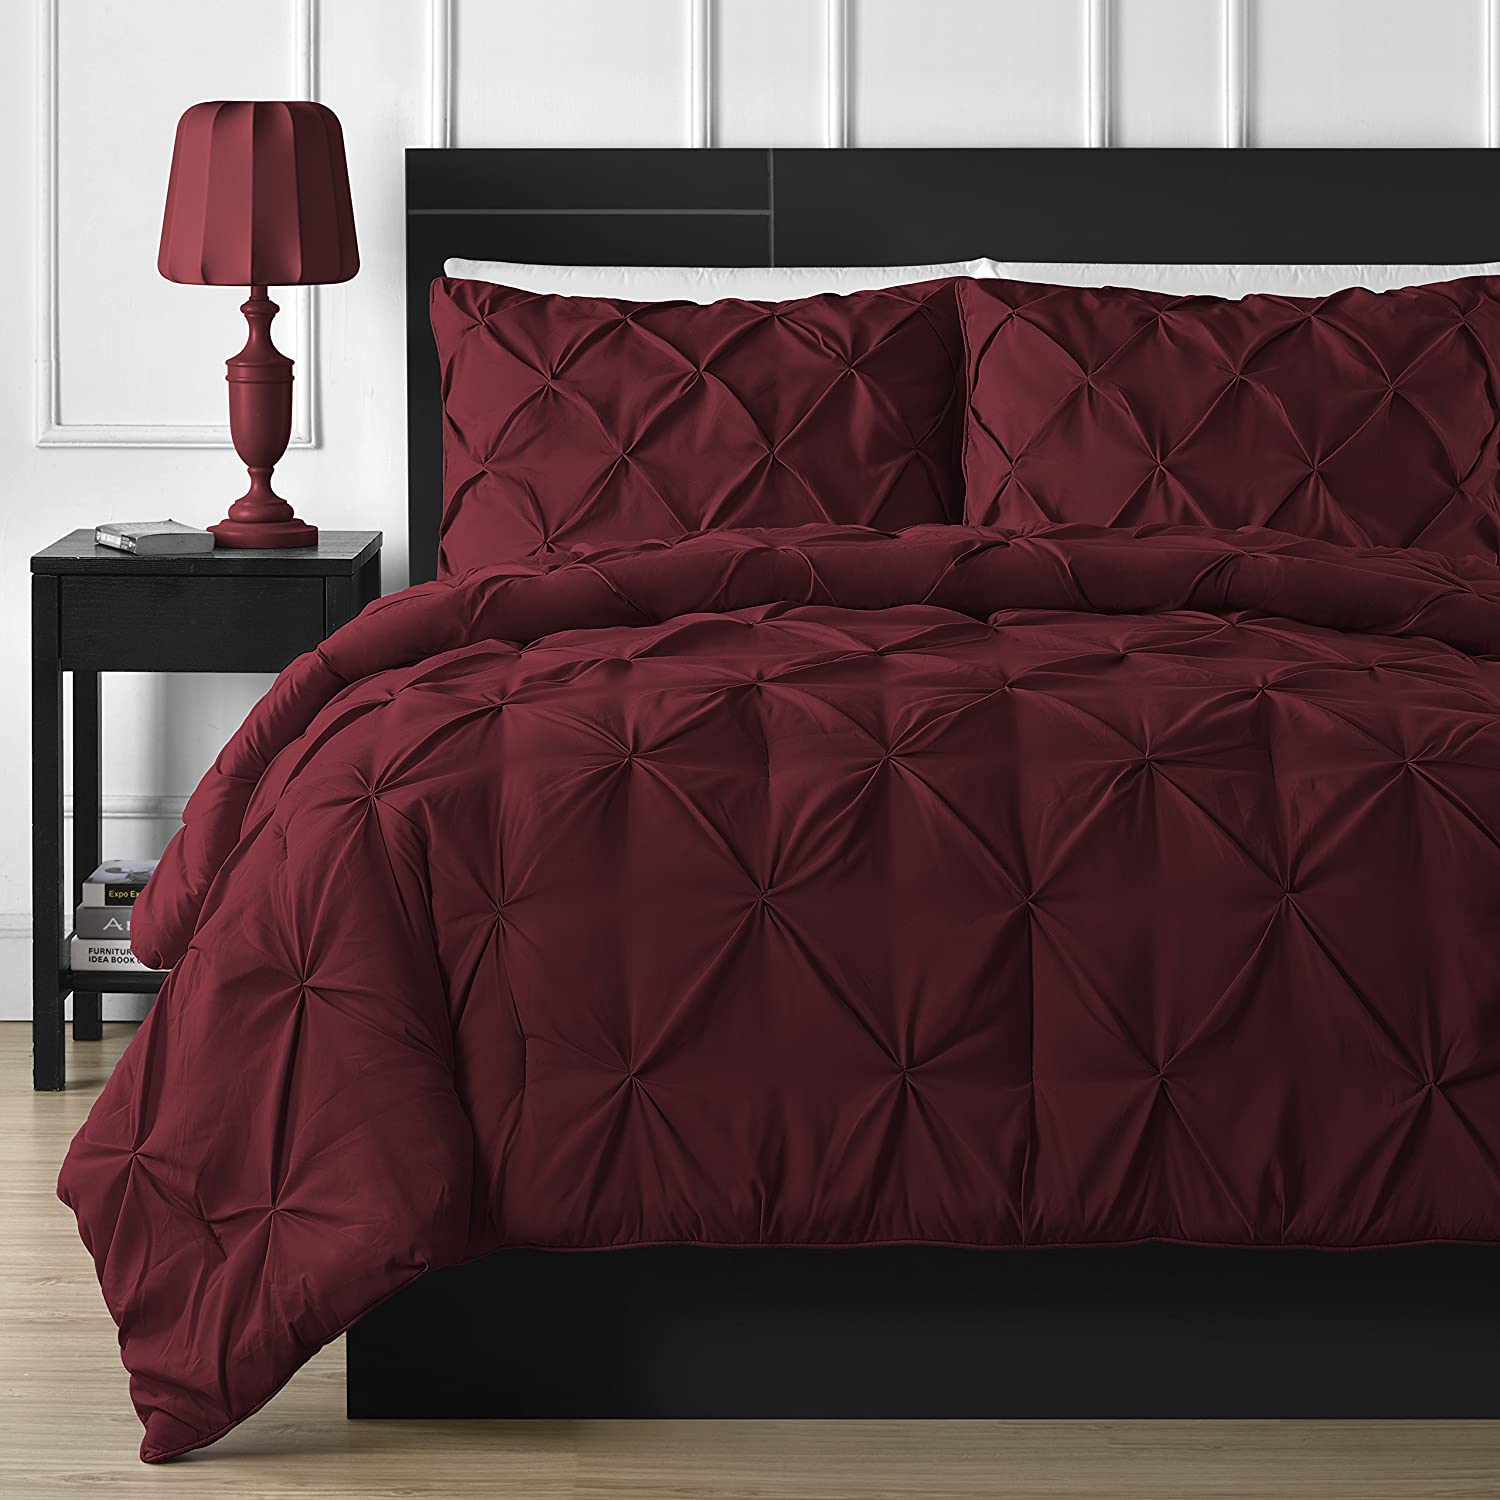 Comfy Bedding 3-piece Pinch Pleat Comforter Set (Queen, Burgundy